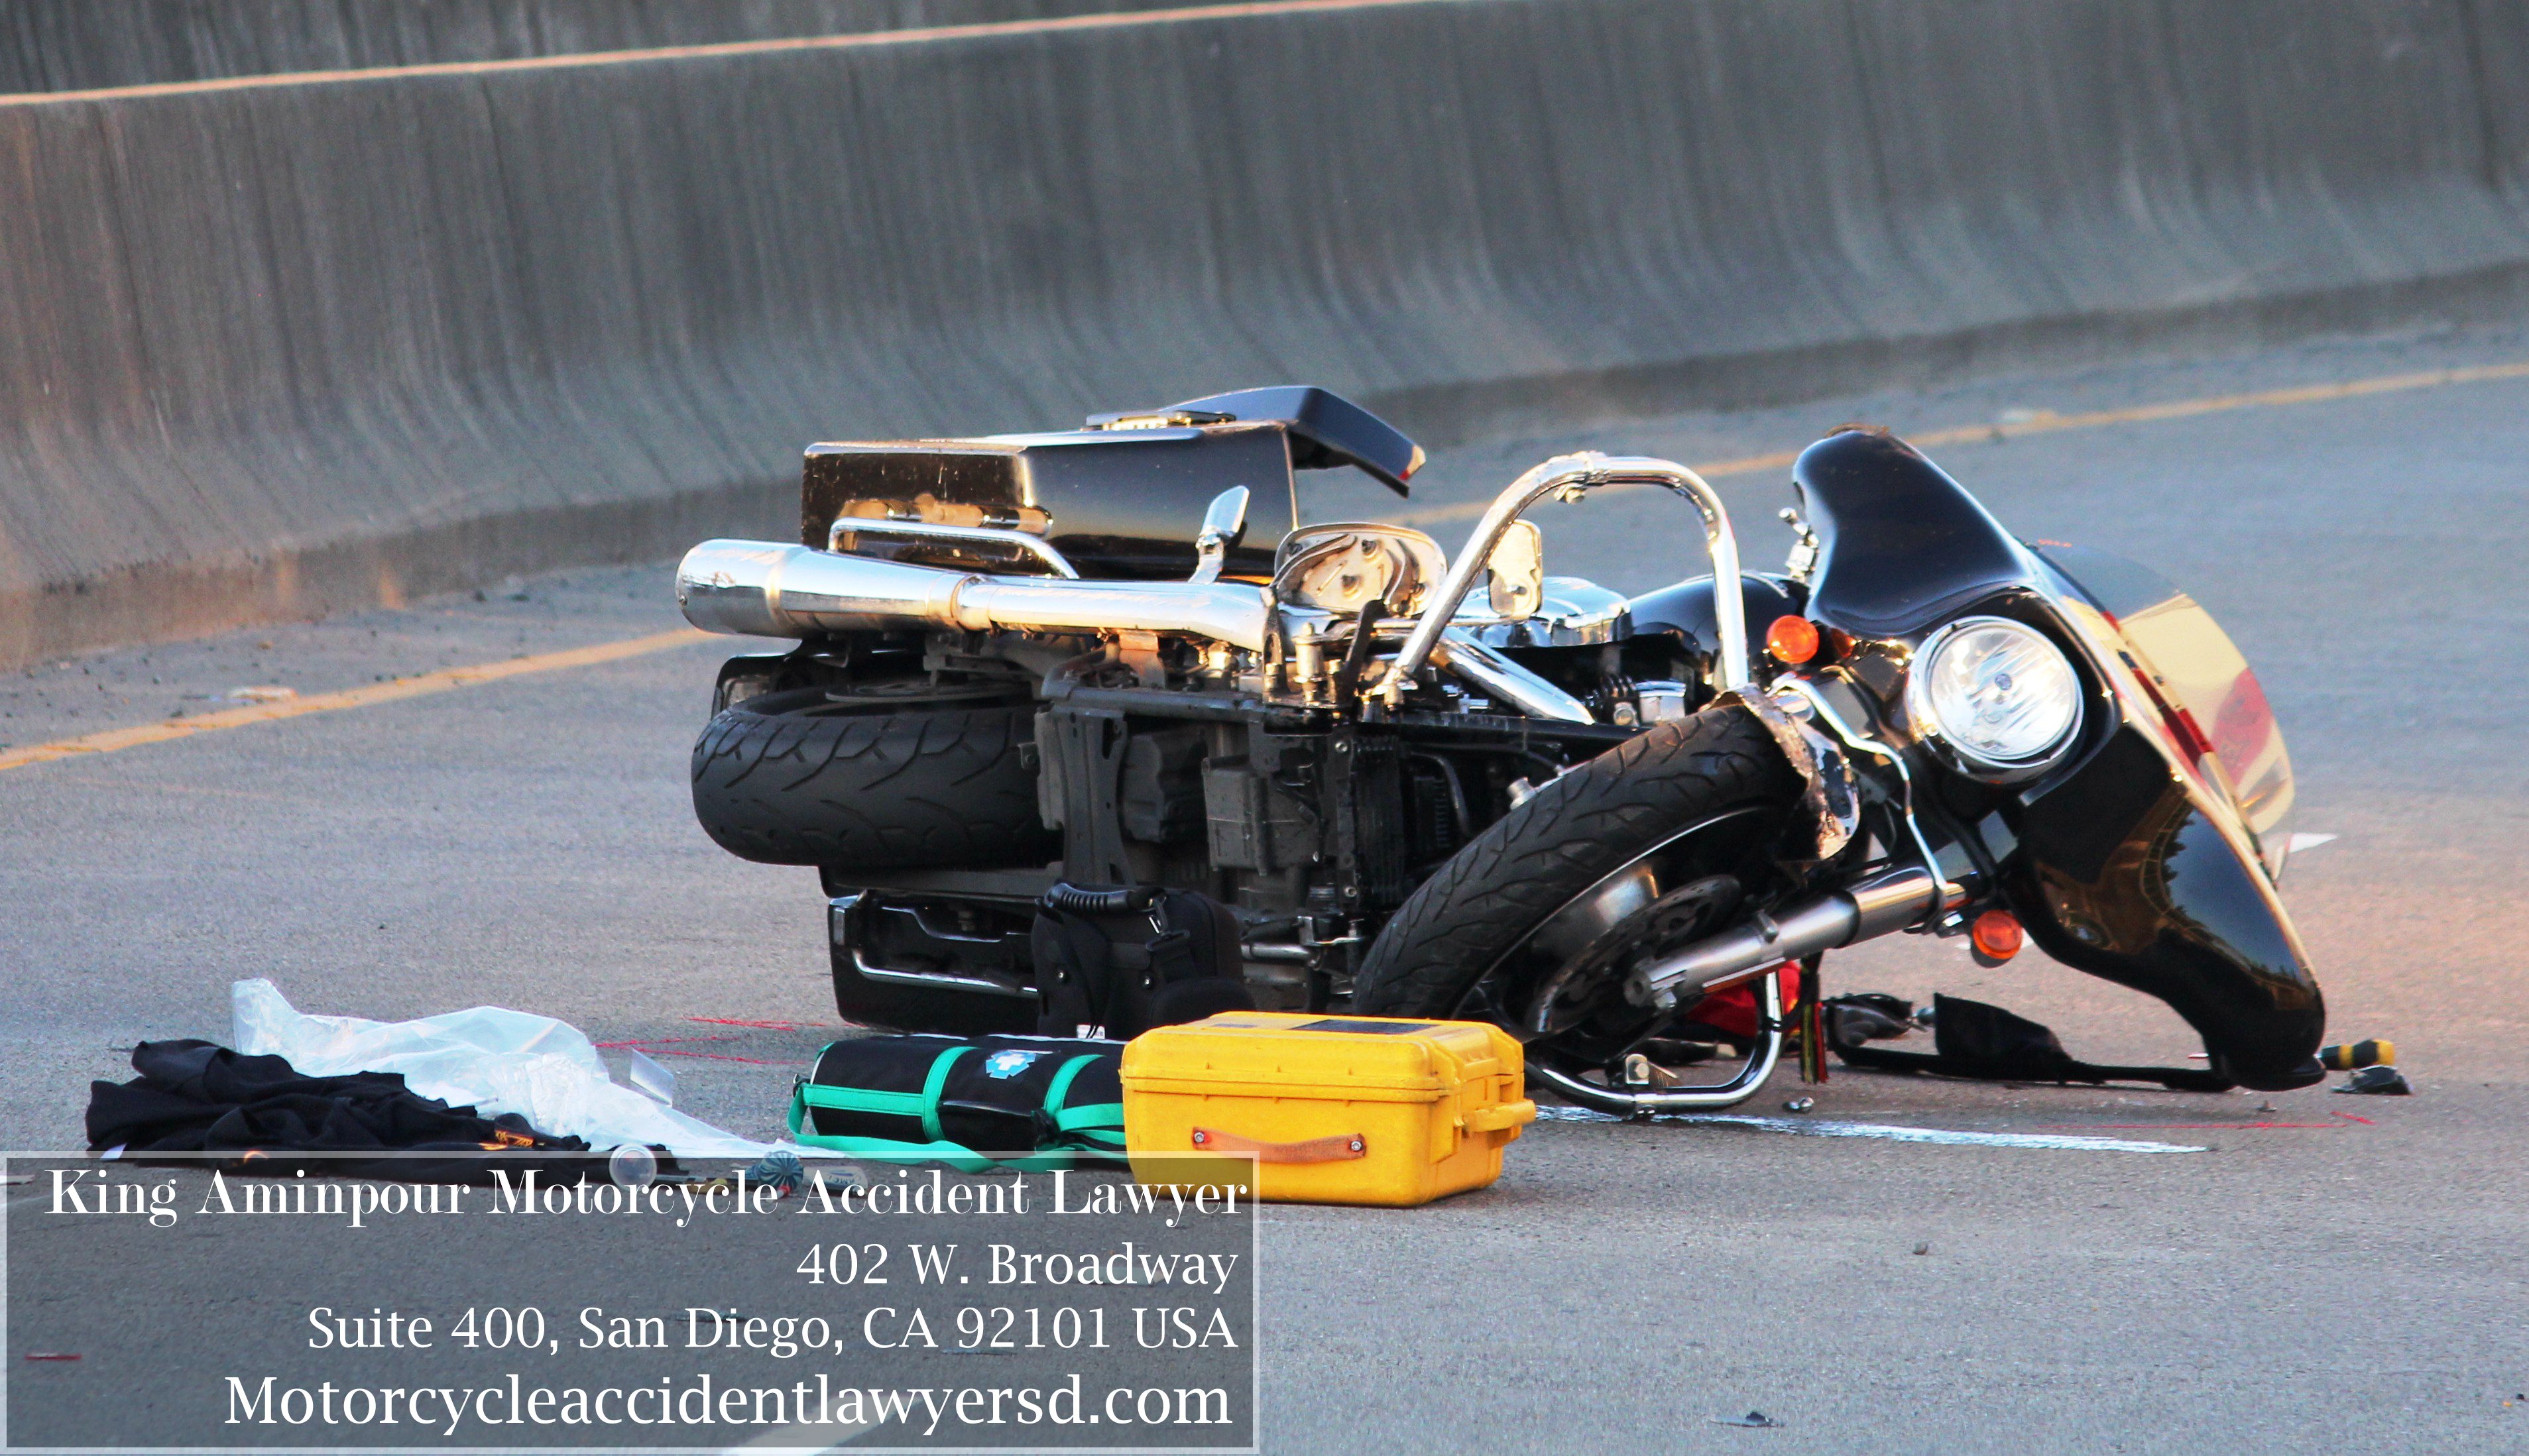 Motorcycle Accident Lawyer | Best Motorcycle Accident Lawyer